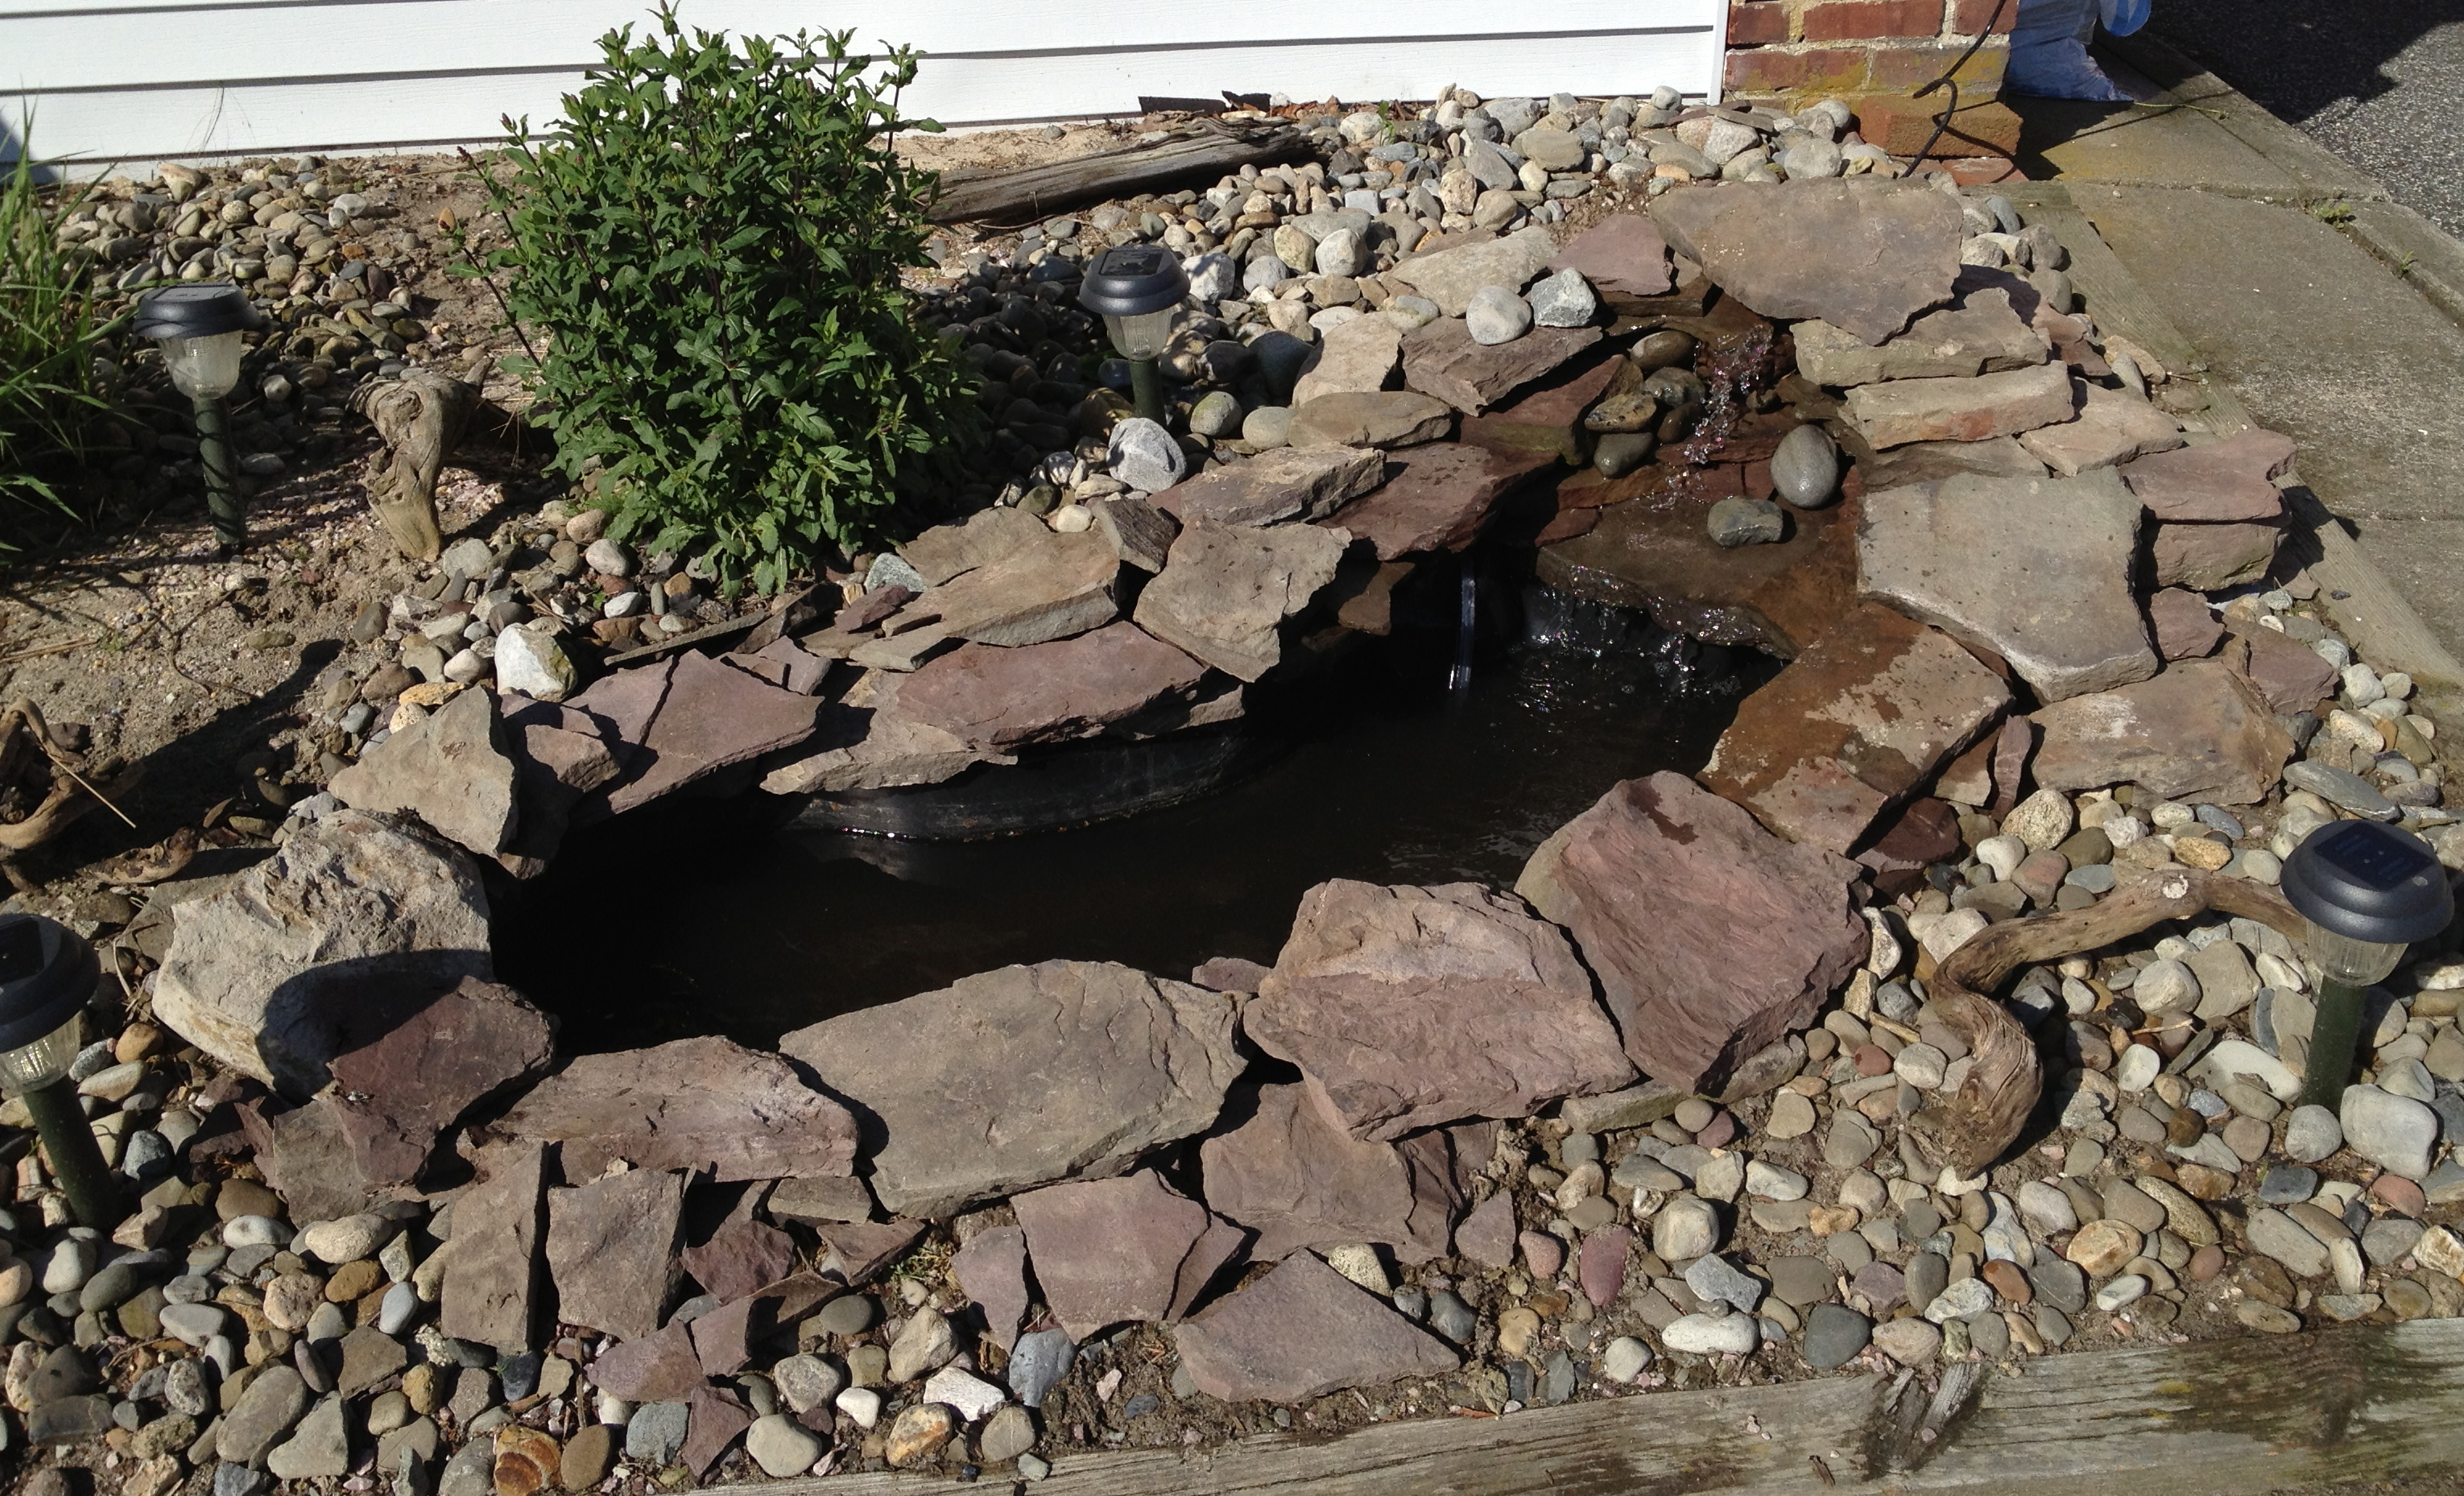 How to build a garden waterfall pond a girl 39 s guide to diy for Diy ponds and waterfalls